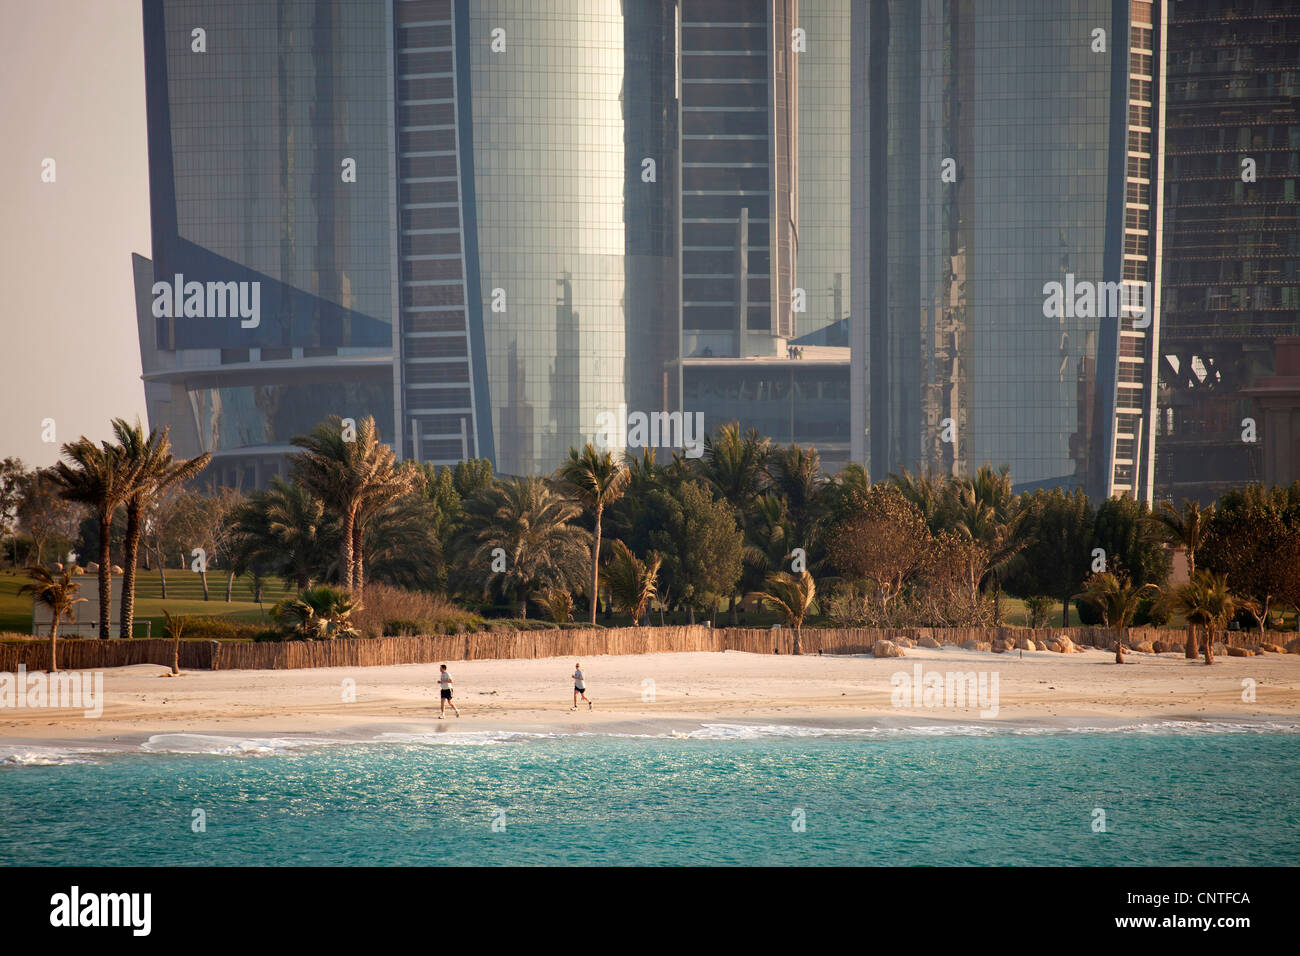 runners at the beach in front of the newly built, modern Skyscrapers Etihad Towers in Abu Dhabi, United Arab Emirates, - Stock Image